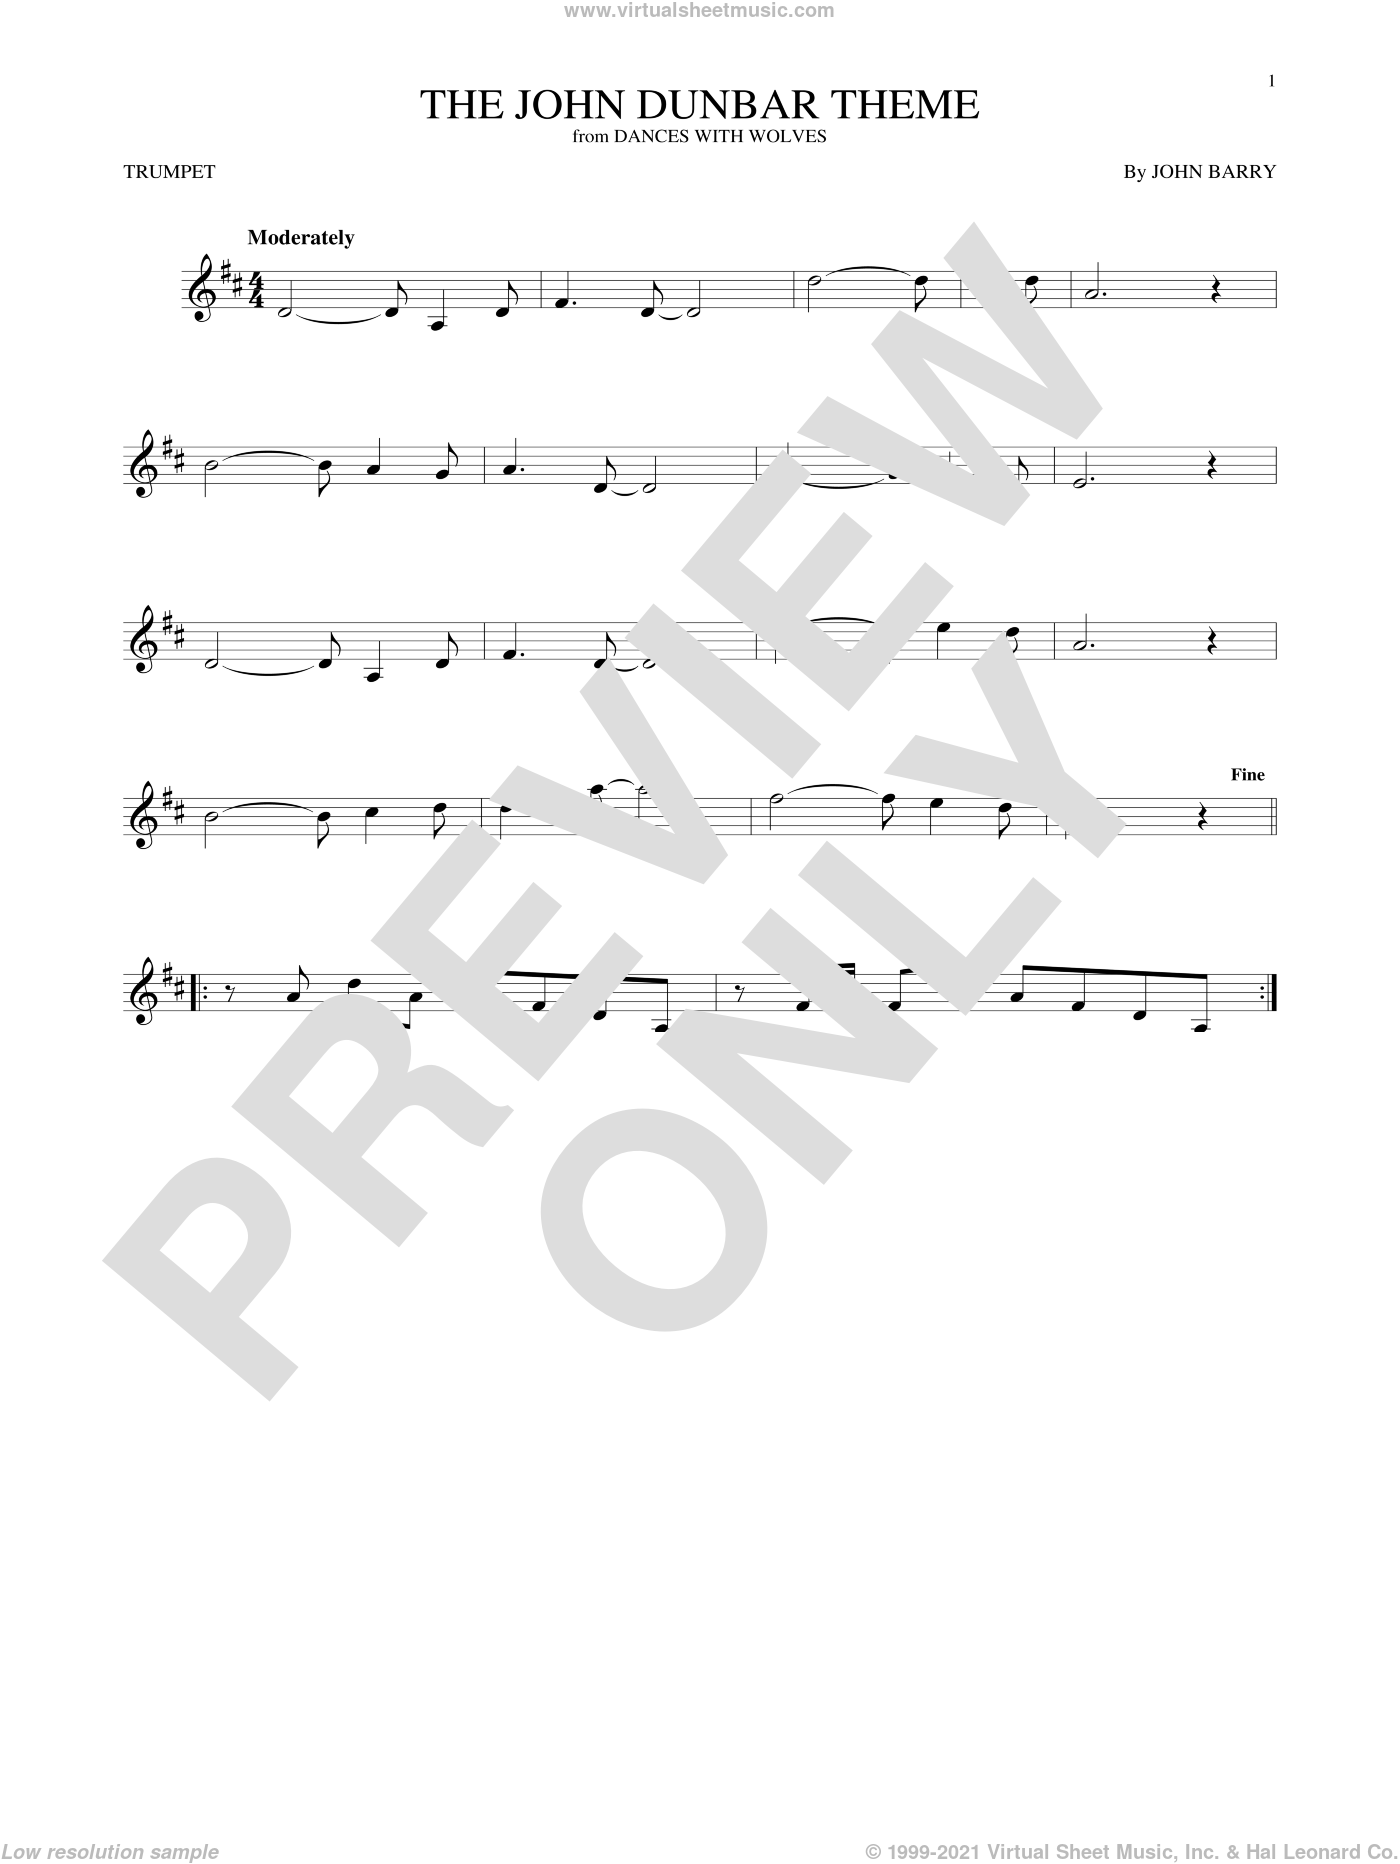 The John Dunbar Theme sheet music for trumpet solo by John Barry. Score Image Preview.